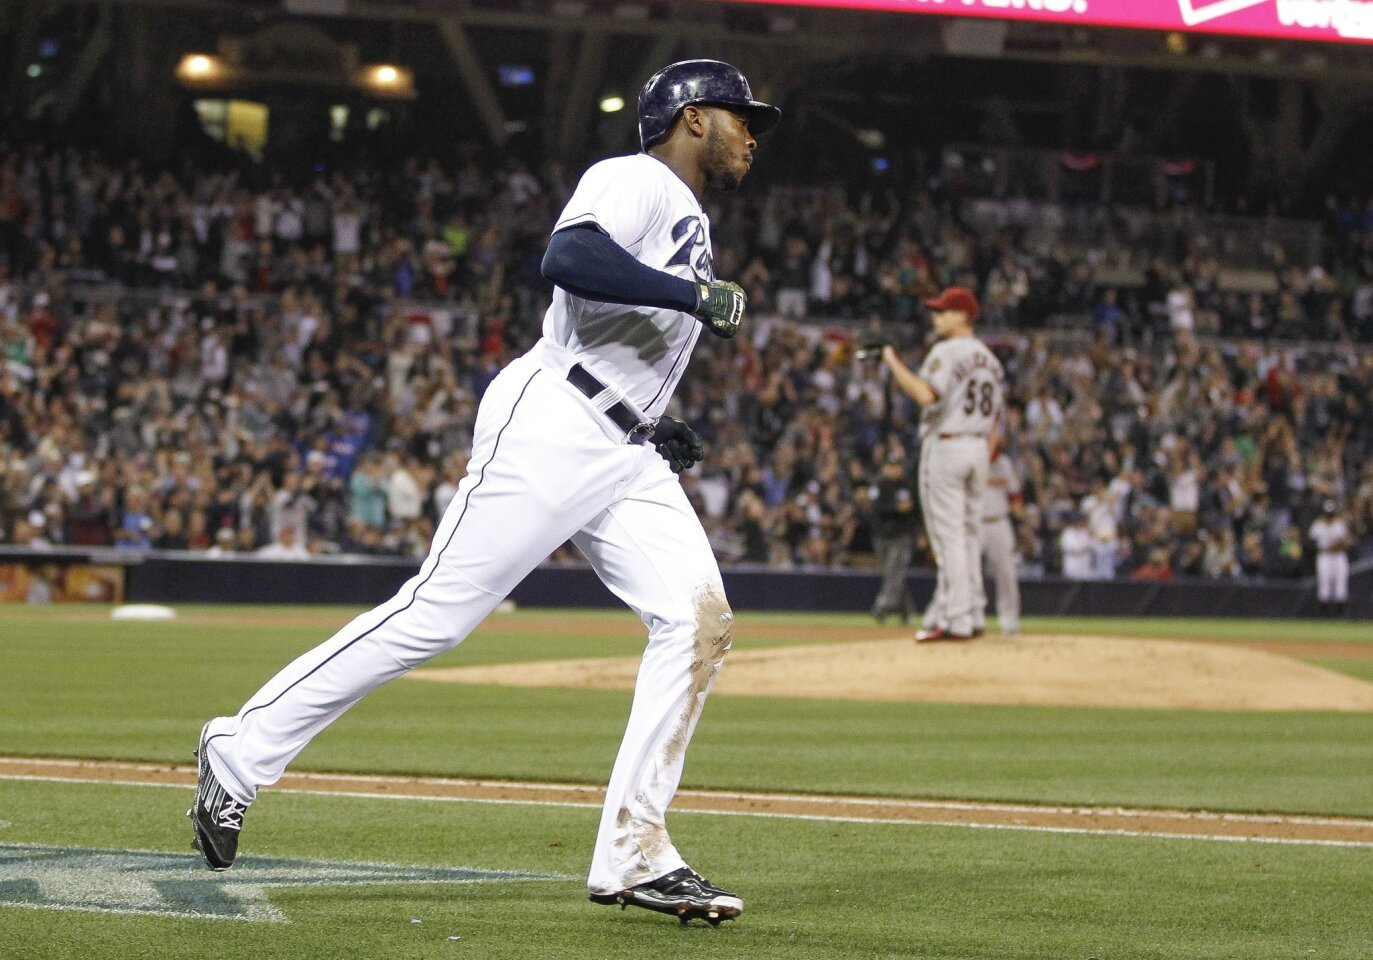 The Padres' Justin Upton runs toward first base as Diamondbacks pitcher Jeremy Hellickson stands at the mound after Upton hit a home run in the fifth inning at Petco Park in San Diego on Tuesday, April 14, 2015. Padres won 5-1.